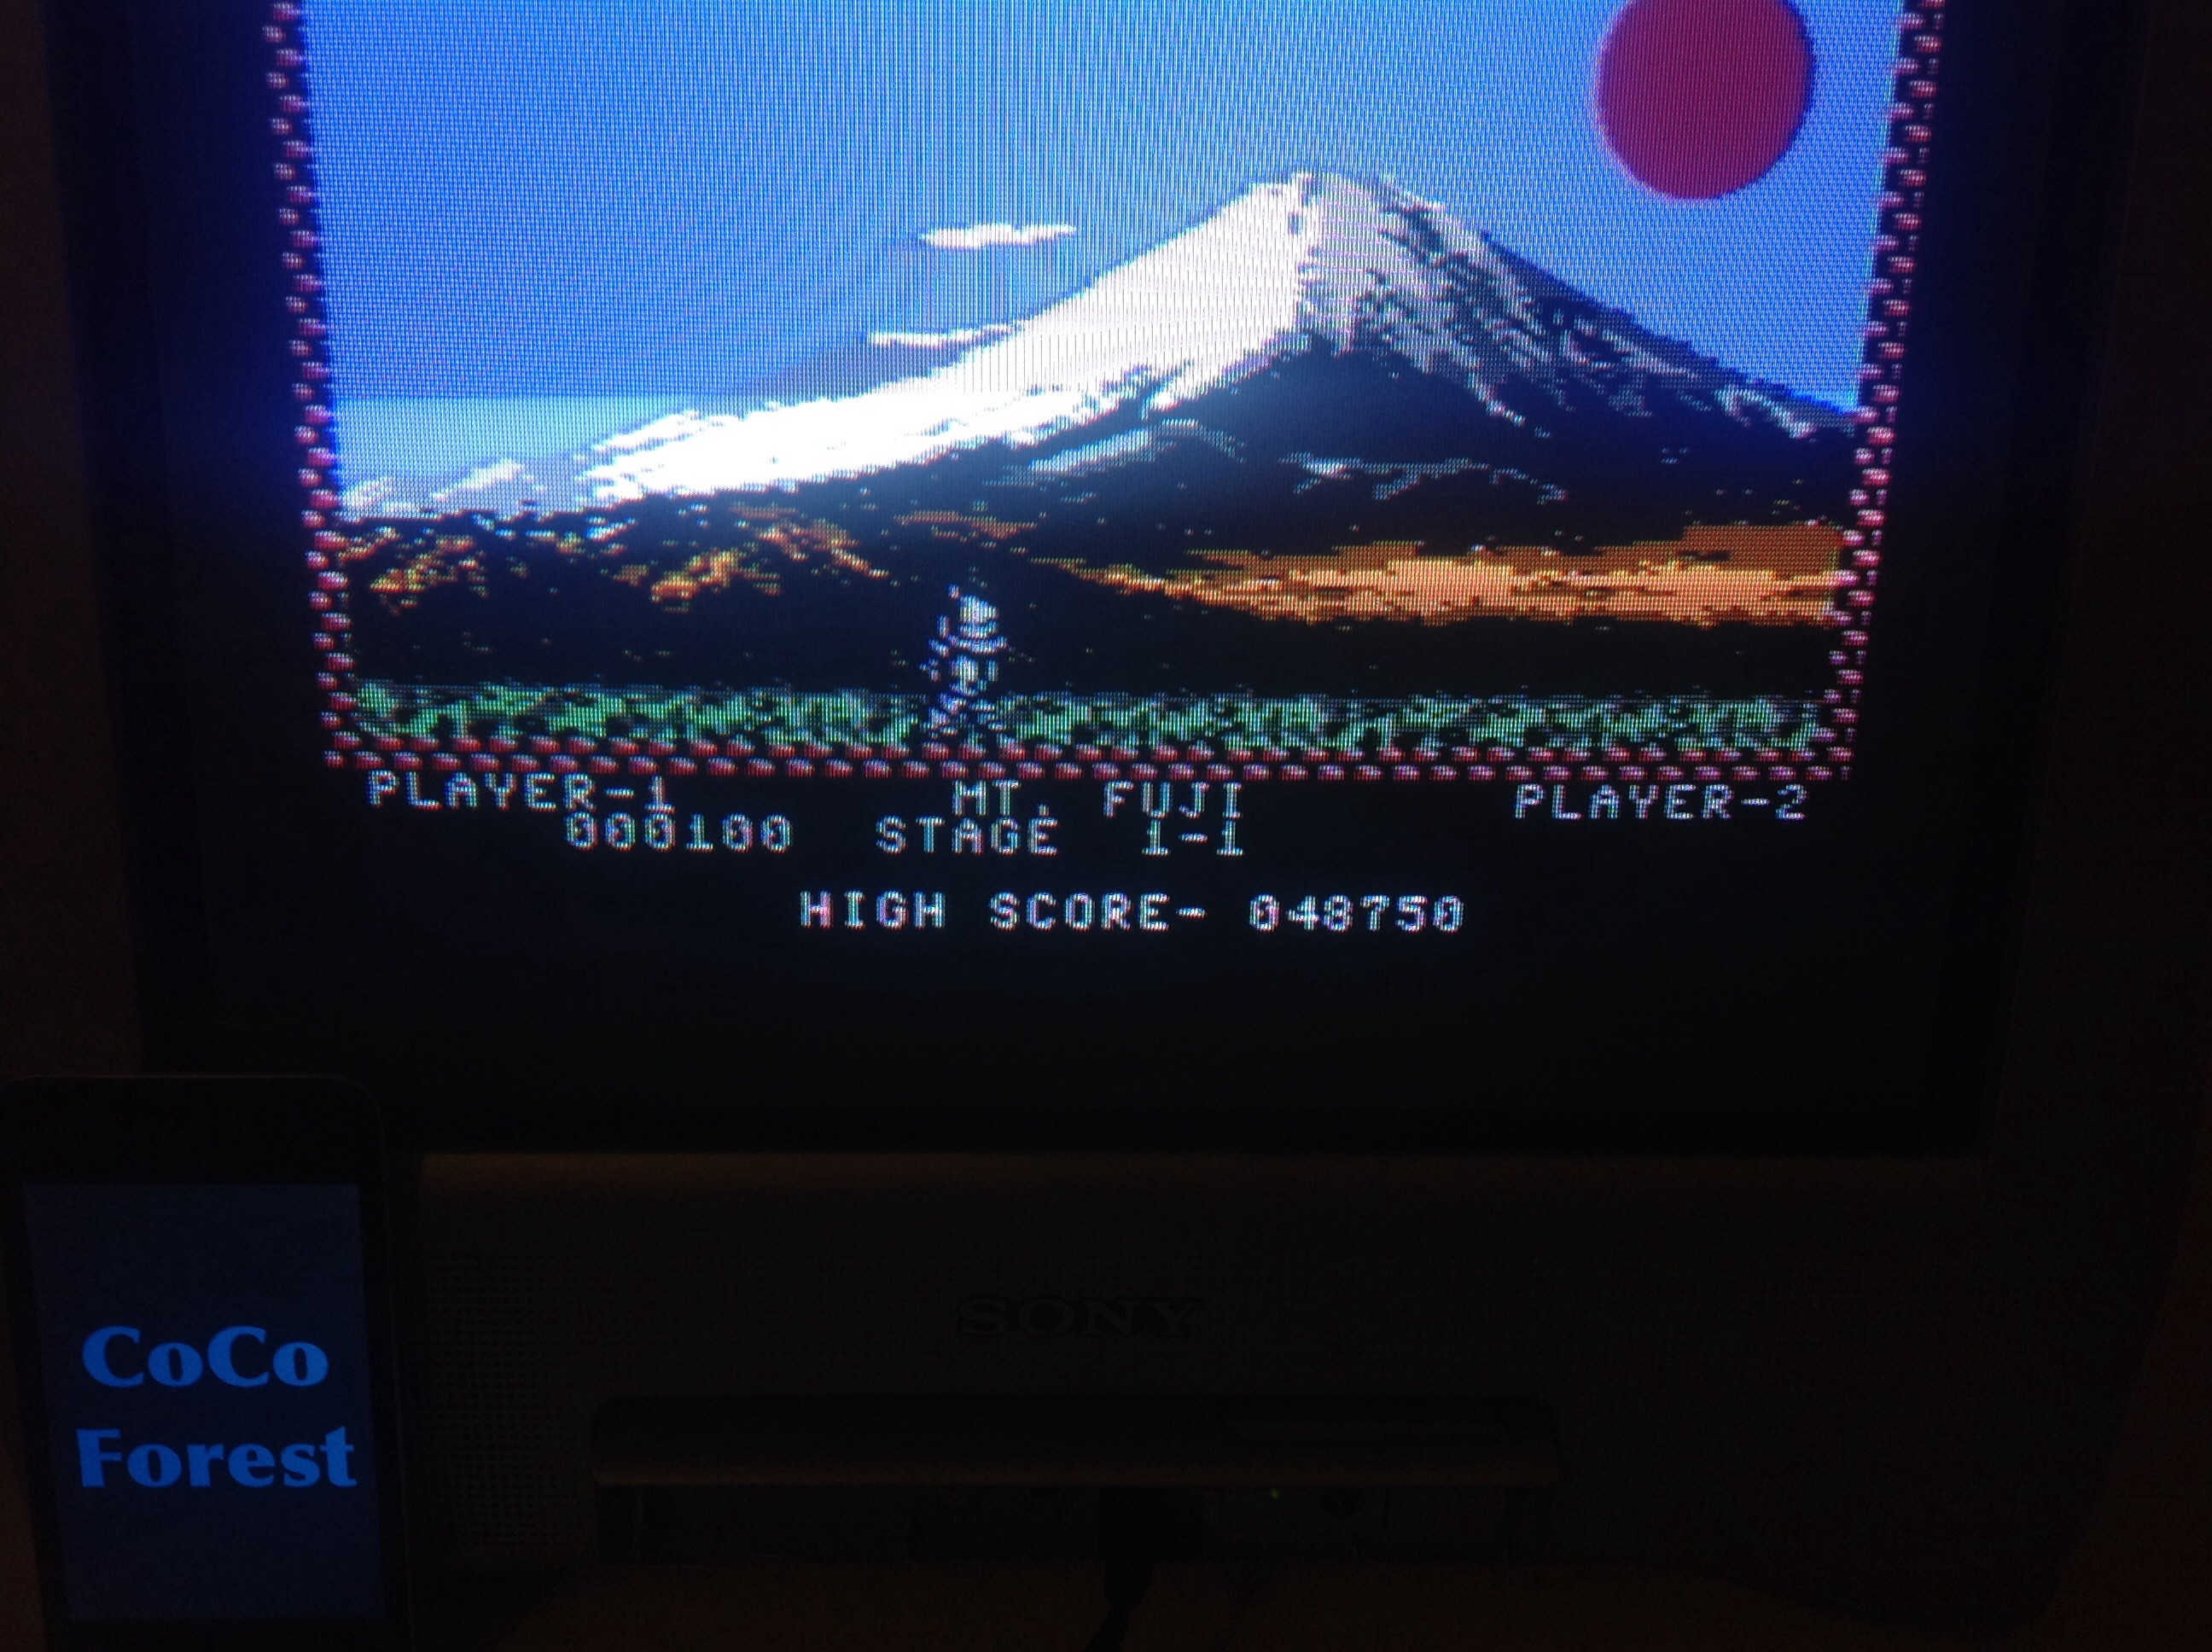 CoCoForest: Pang (Commodore 64) 48,750 points on 2015-03-13 14:42:33